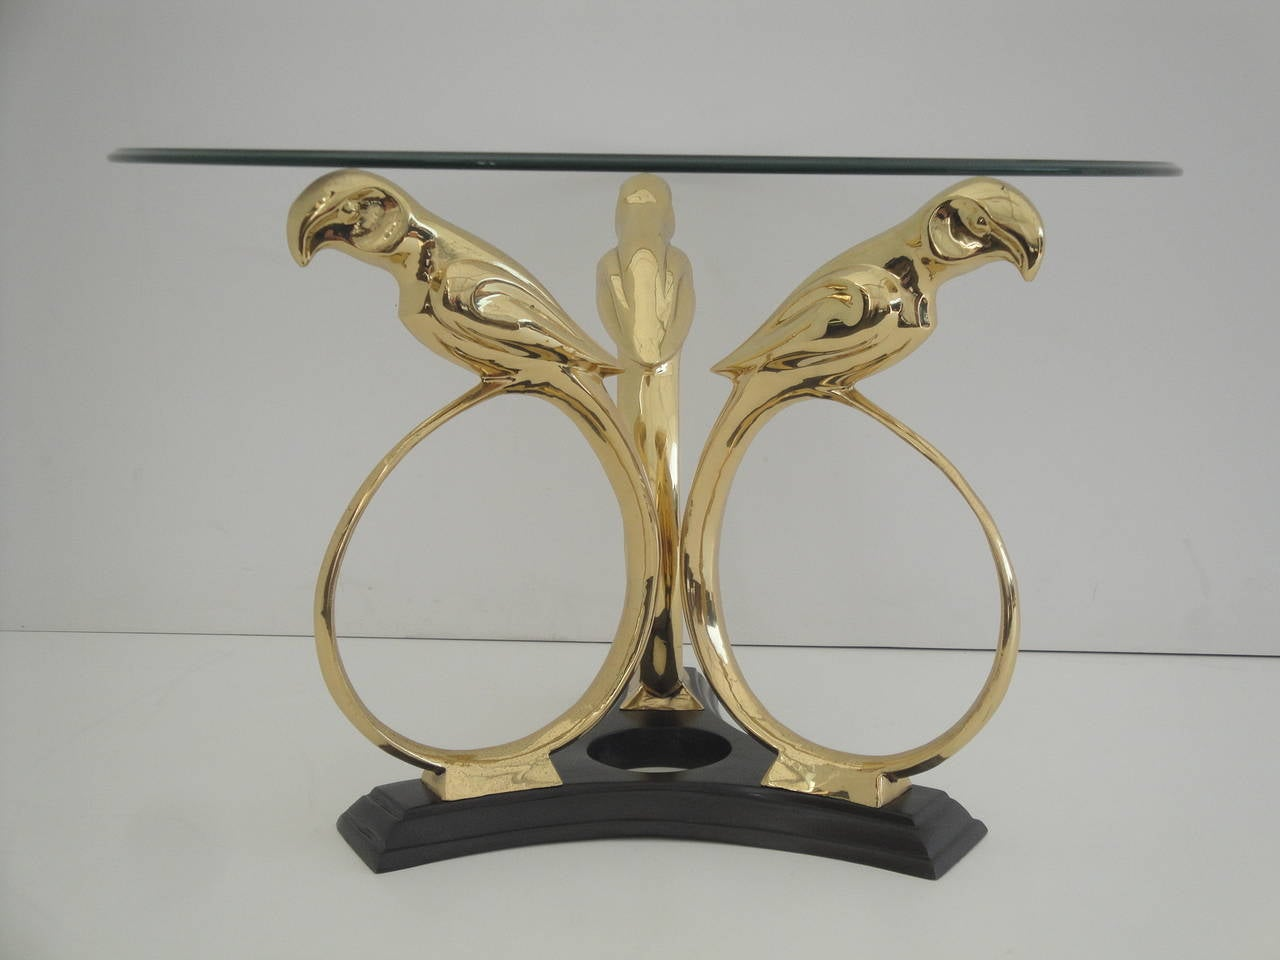 Brass Parrot Coffee Or End Table For Sale At 1stdibs